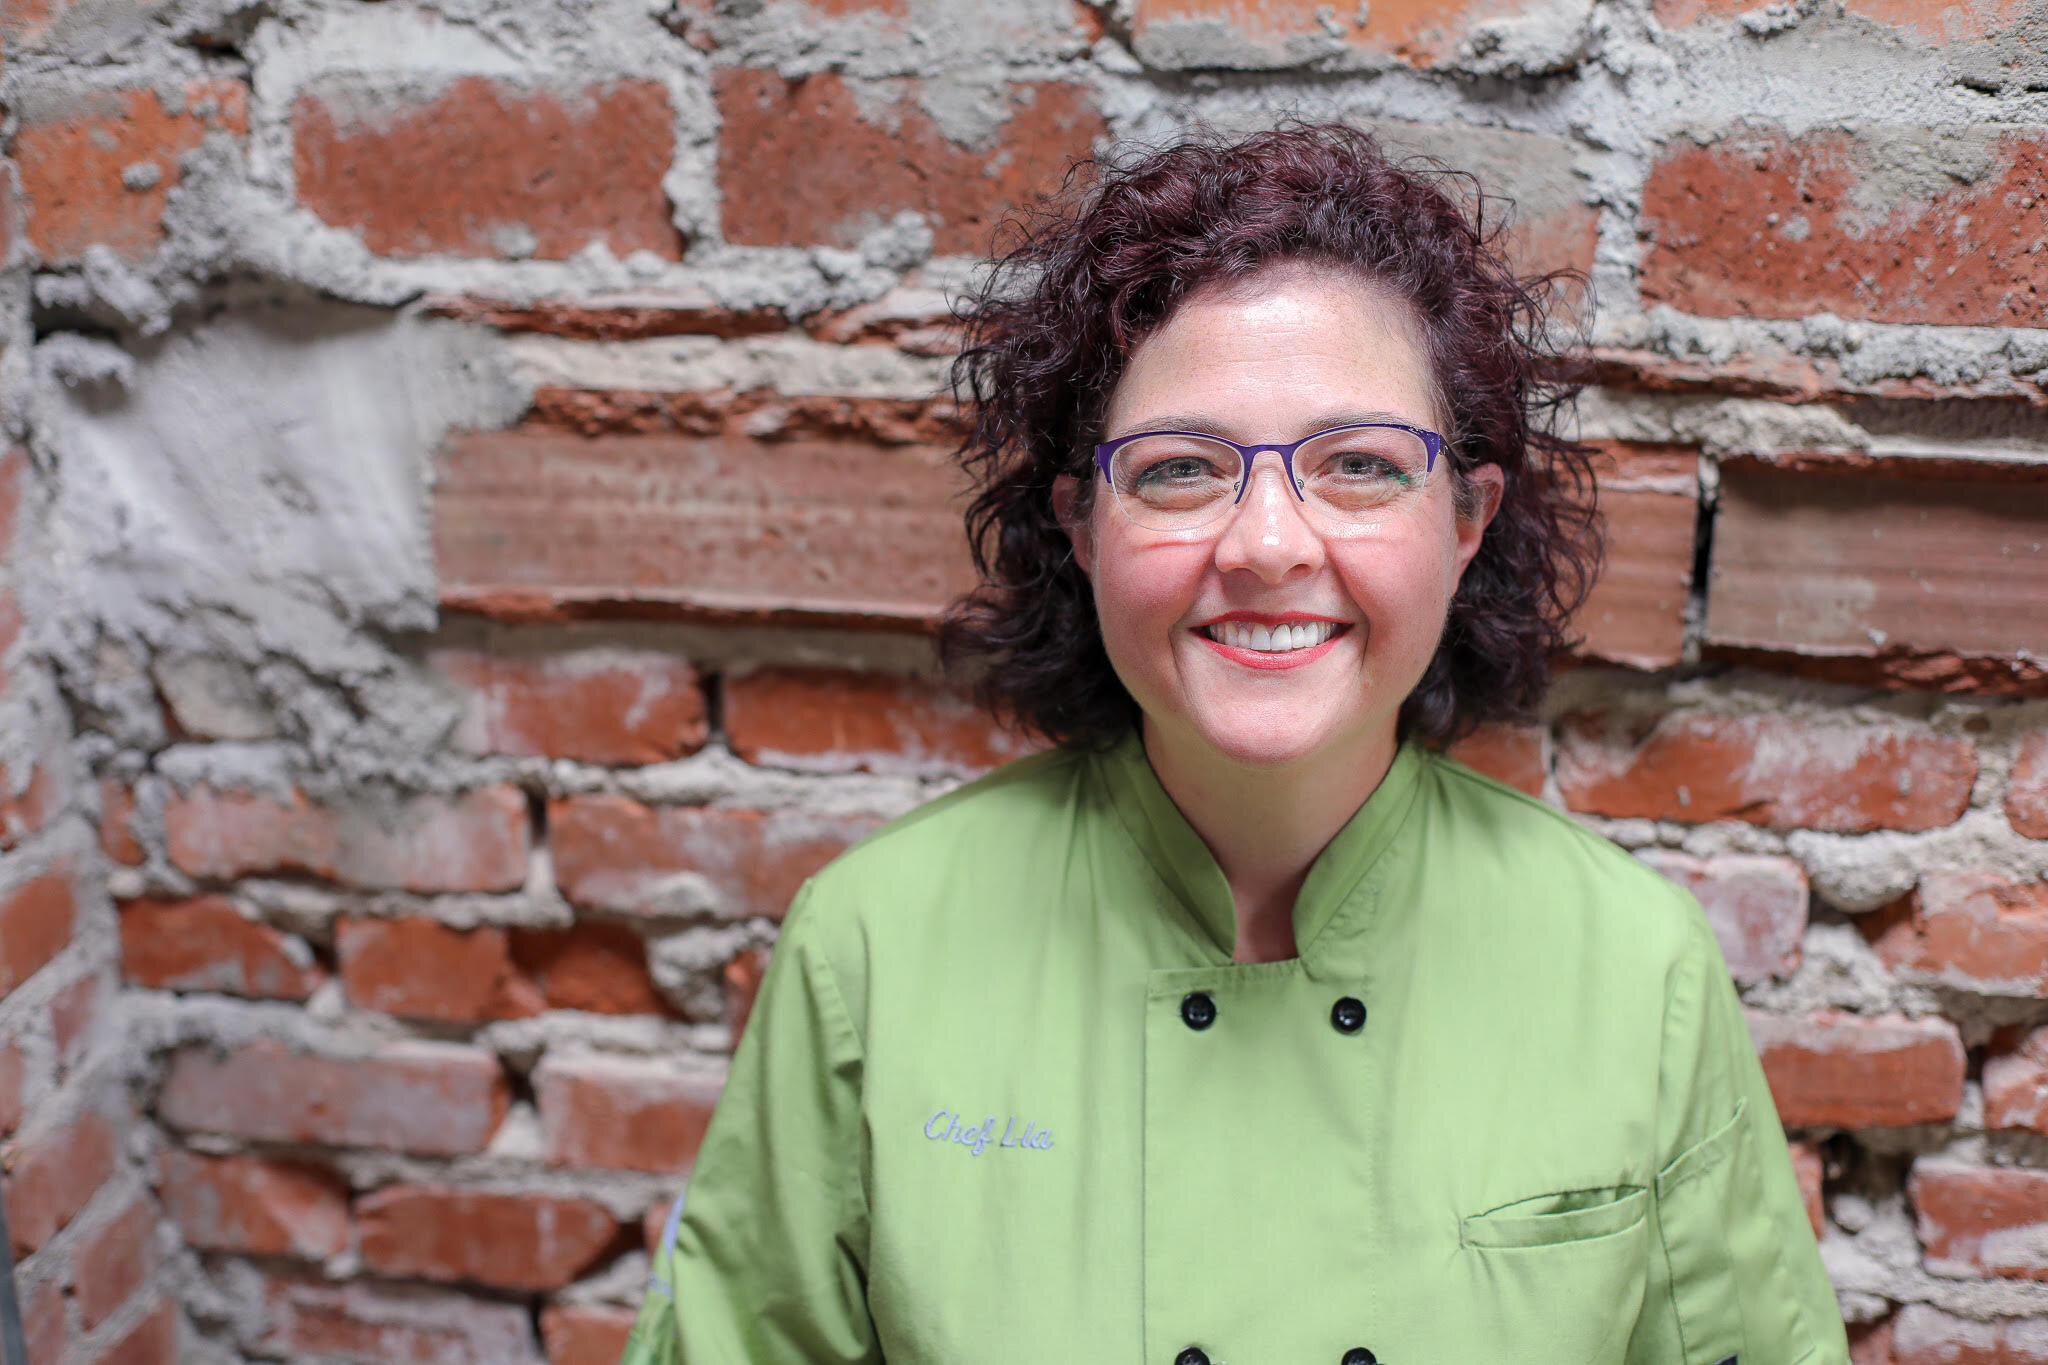 Chef Lia Lewis - Born in Paris, raised in Tulsa, Chef Lia is returning to Cooking for a Cause after some years. With her love for food and sharing it with one another, we are excited to have her with us again this year.